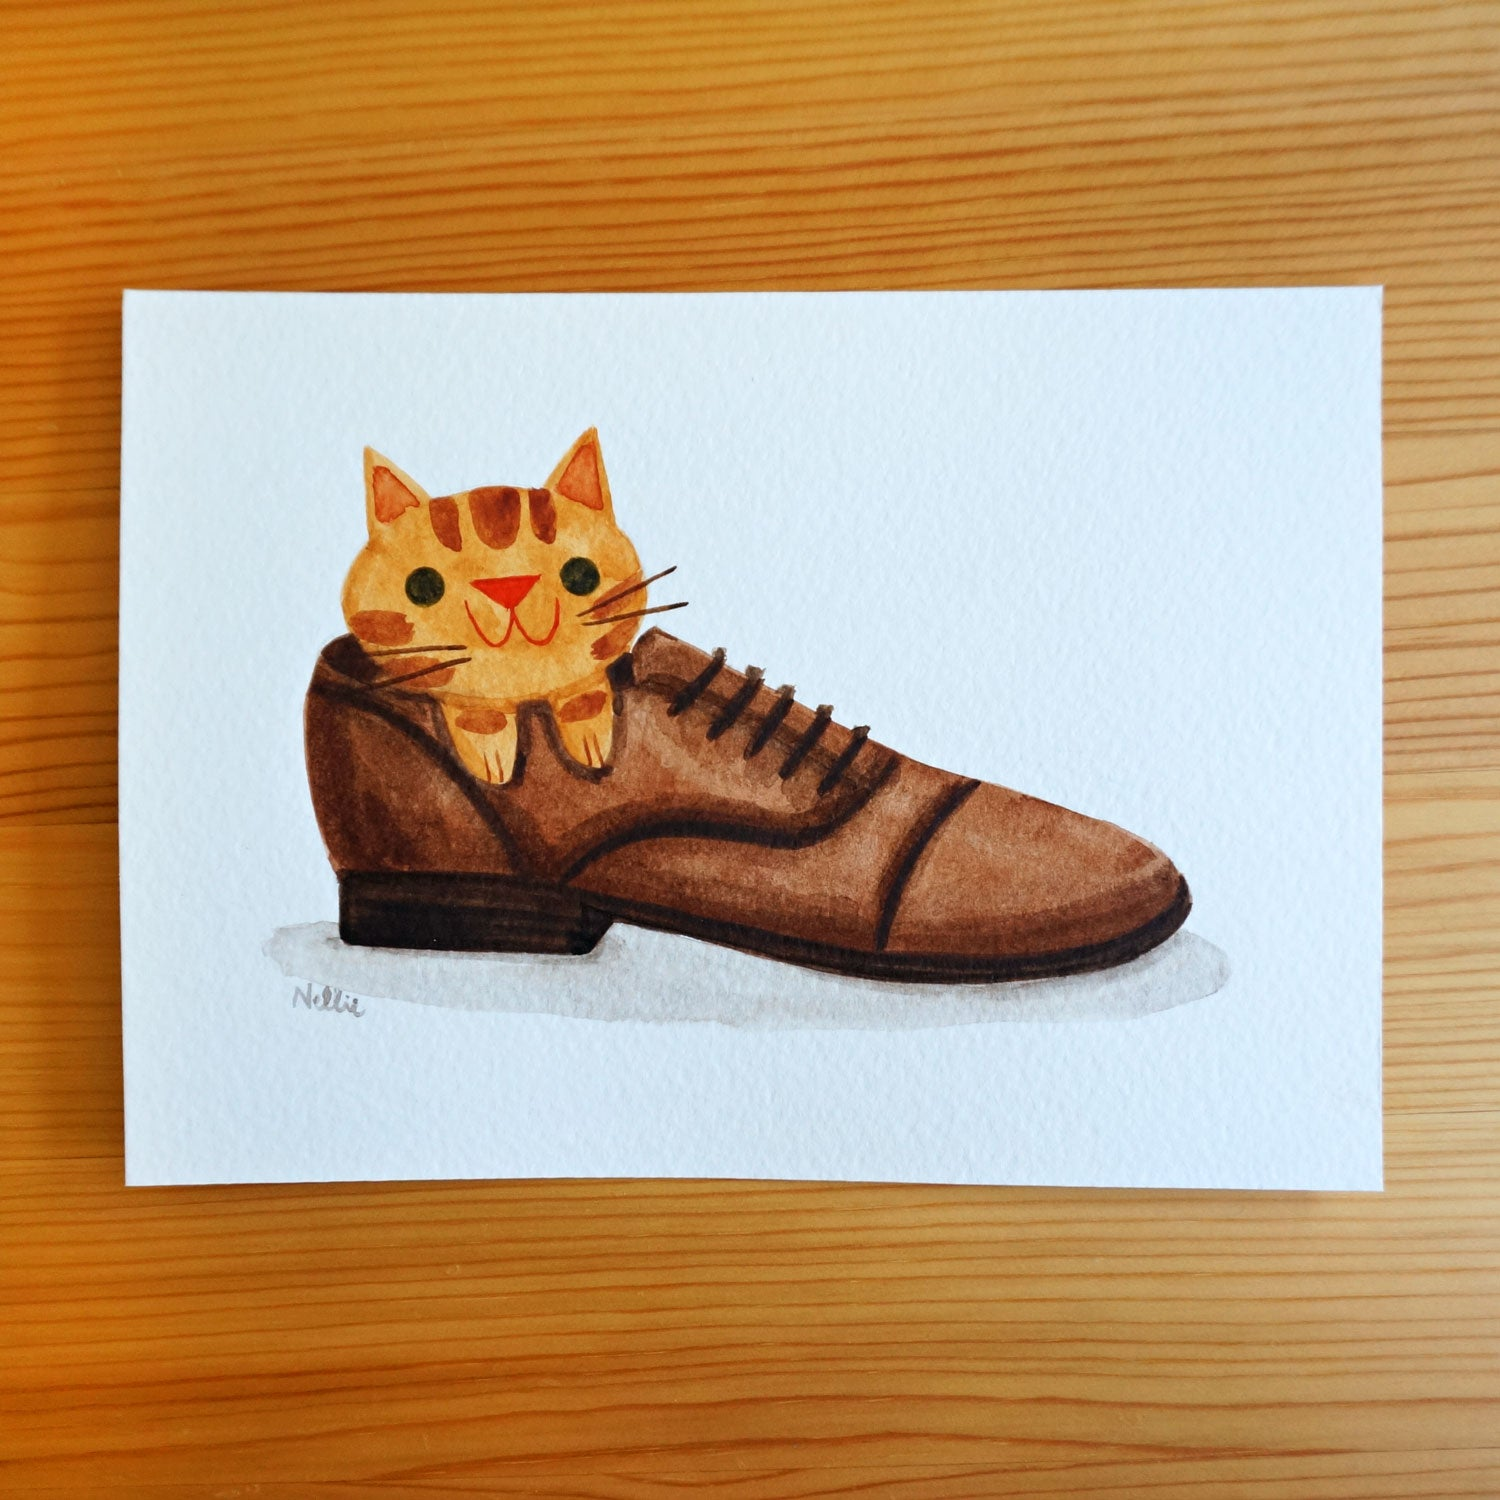 Cat in a Shoe - Original Painting